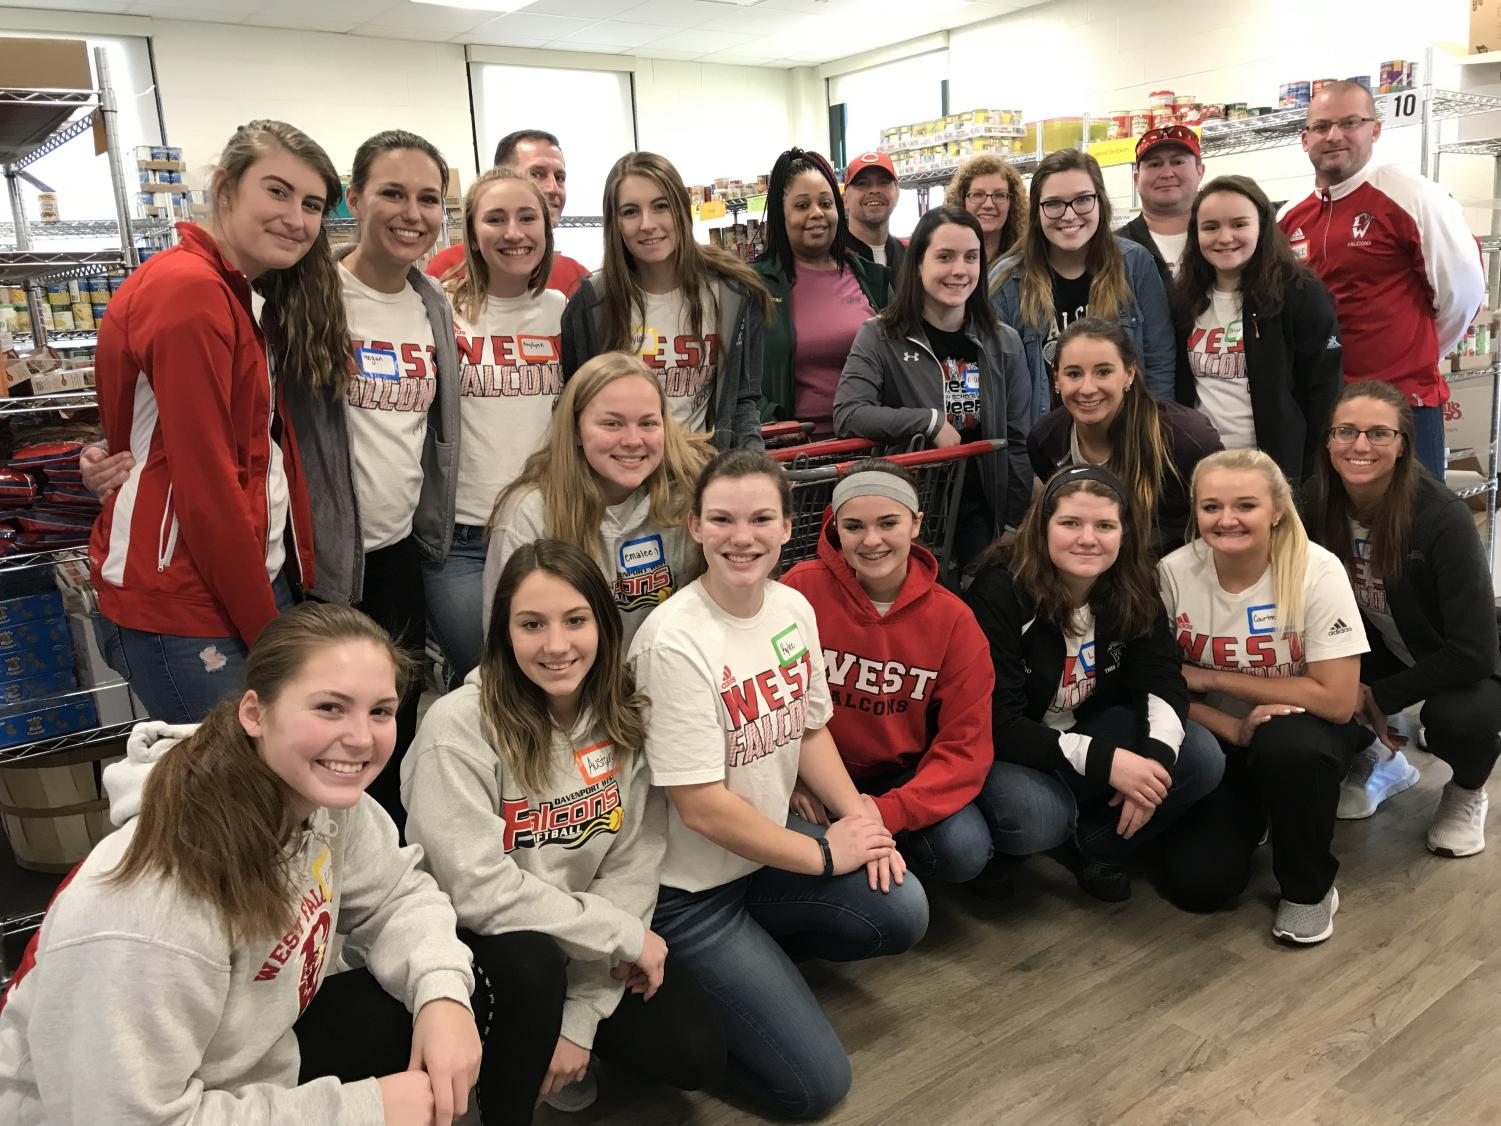 Some of the softball team and their coaches volunteering at the JB Young Food Bank.